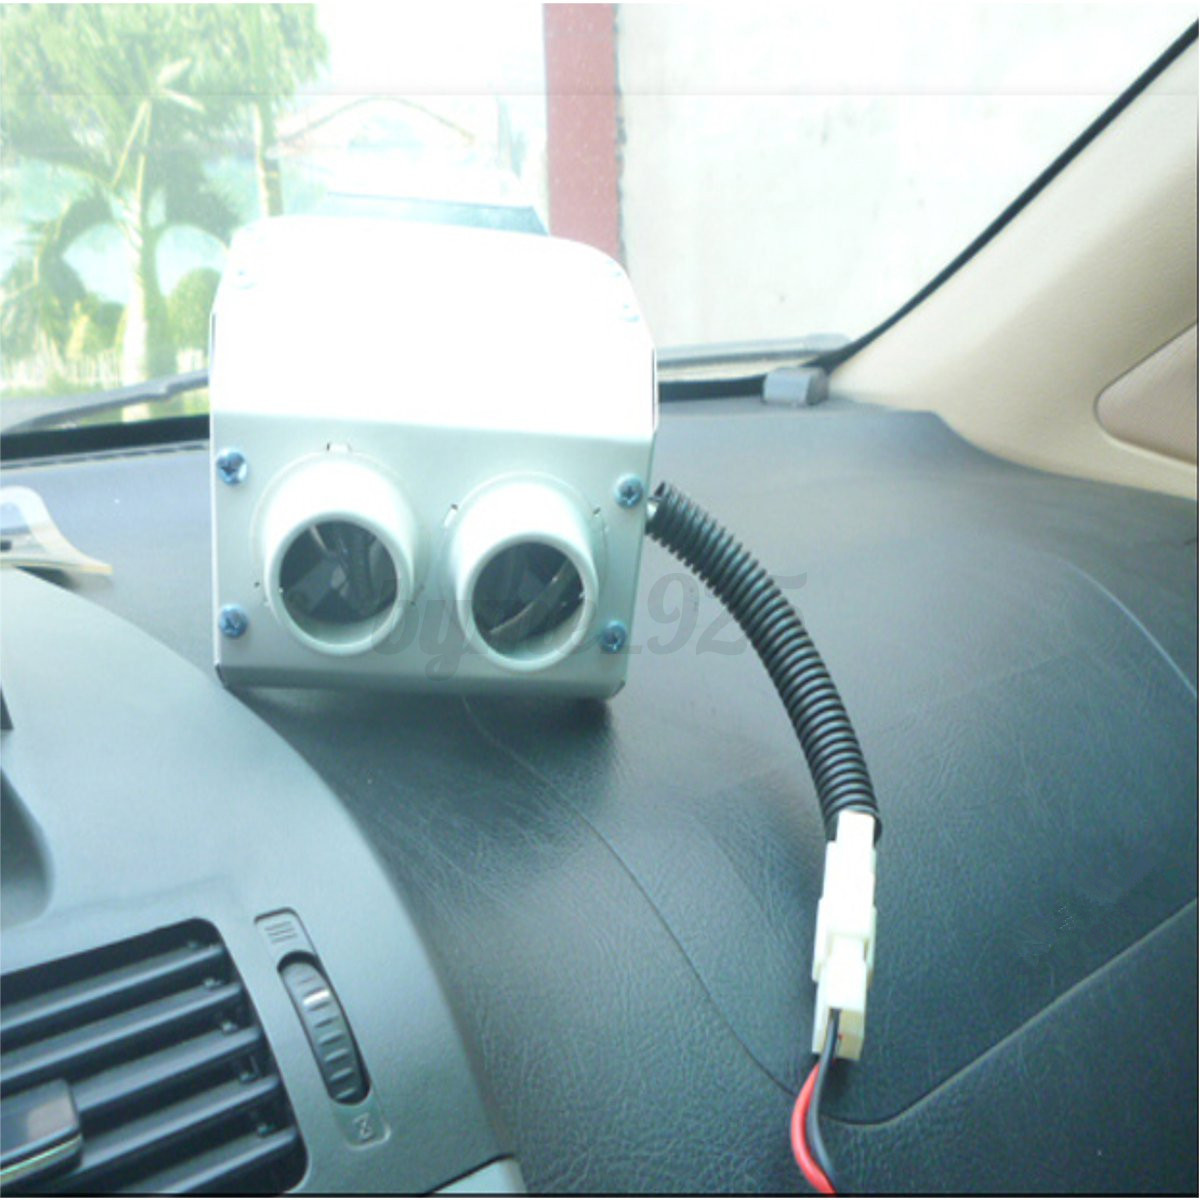 12v 300w double hole car heater warmer thermostat fan for 12v window defroster